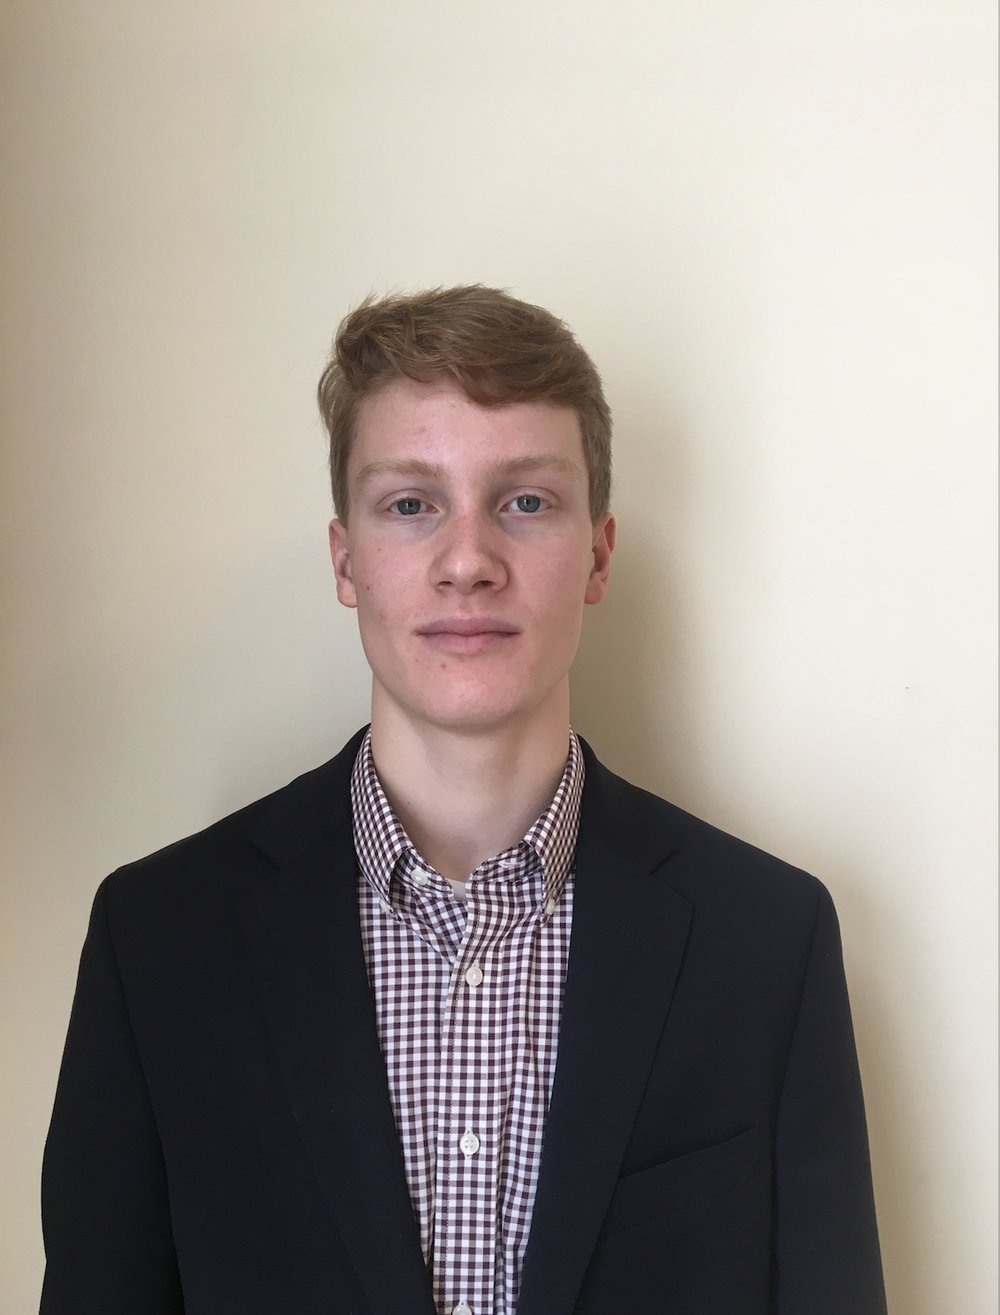 """""""With this opportunity from Atlantis… - …I have learned the importance of being a caring and thoughtful physician. I was able to understand healthcare in the D.C. area and meet peers interested in medicine.""""-Samuel K., North Carolina, High-School Class of 2020, Atlantis D.C. 2018 alum"""